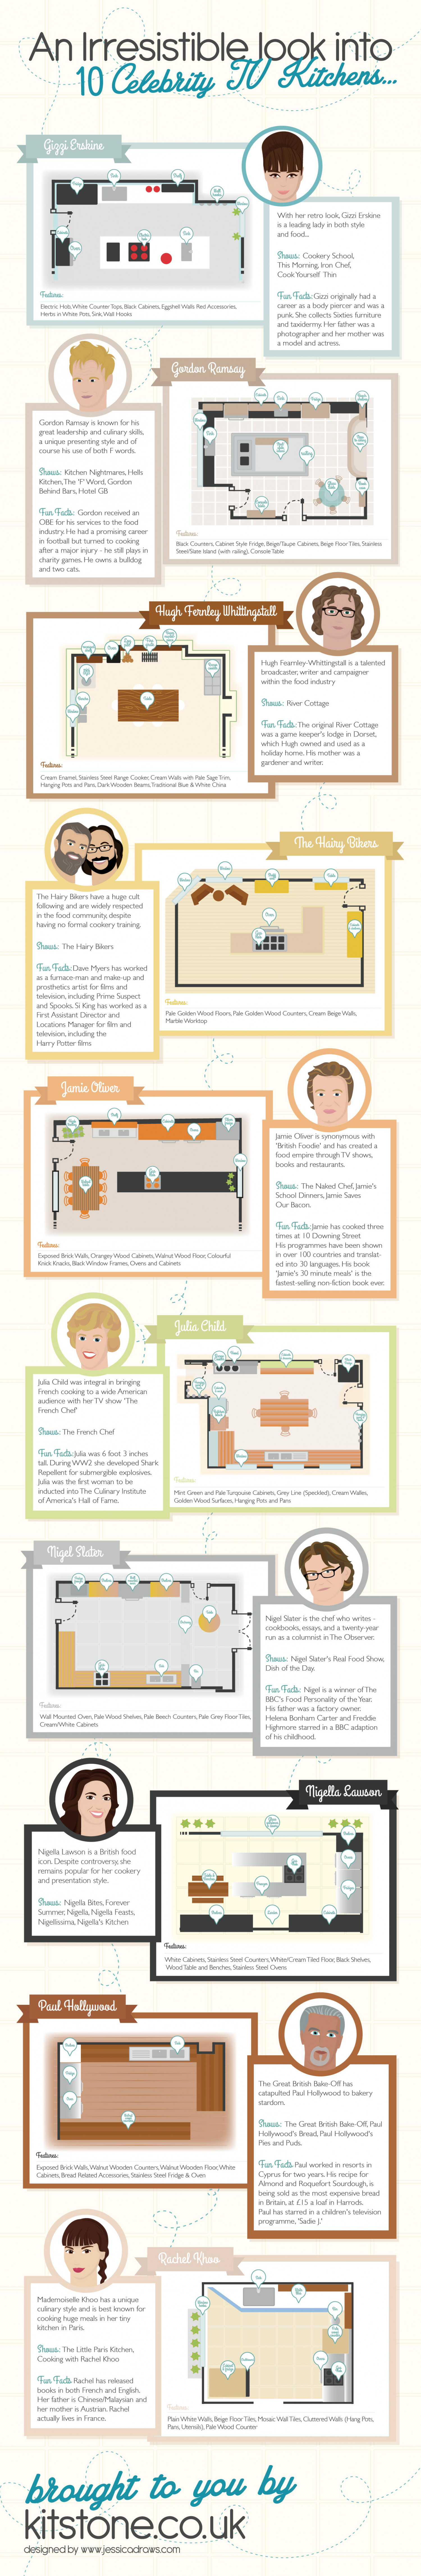 An Irresistible Look Inside 10 Top Celebrity Kitchens Infographic